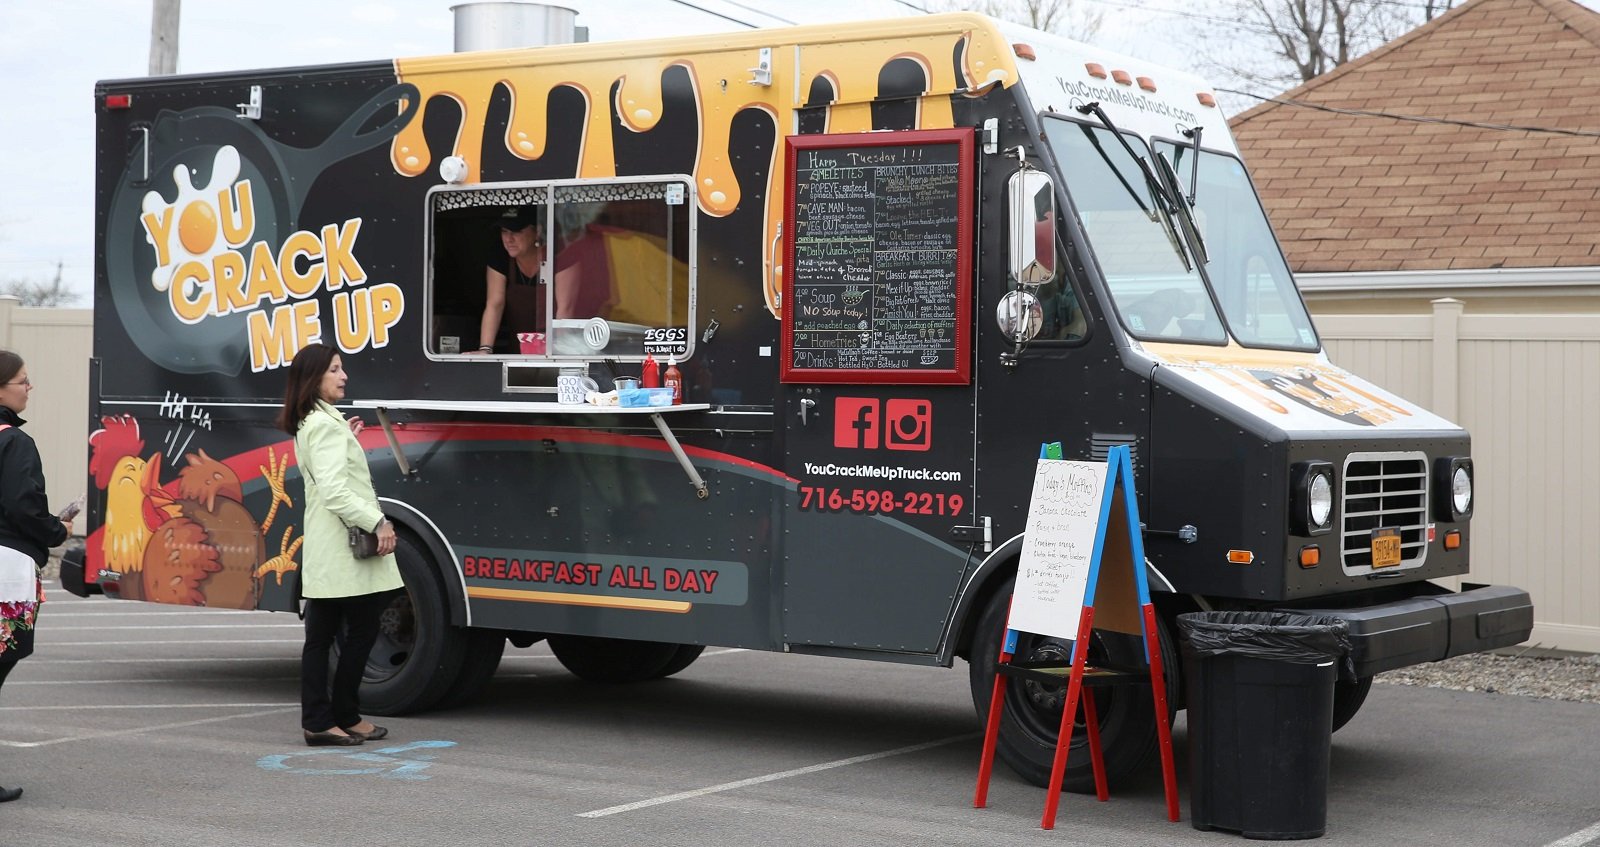 You Crack Me Up sells breakfast food all day; here it's pictured at Food Truck Tuesday in Larkinville. (Sharon Cantillon/Buffalo News)